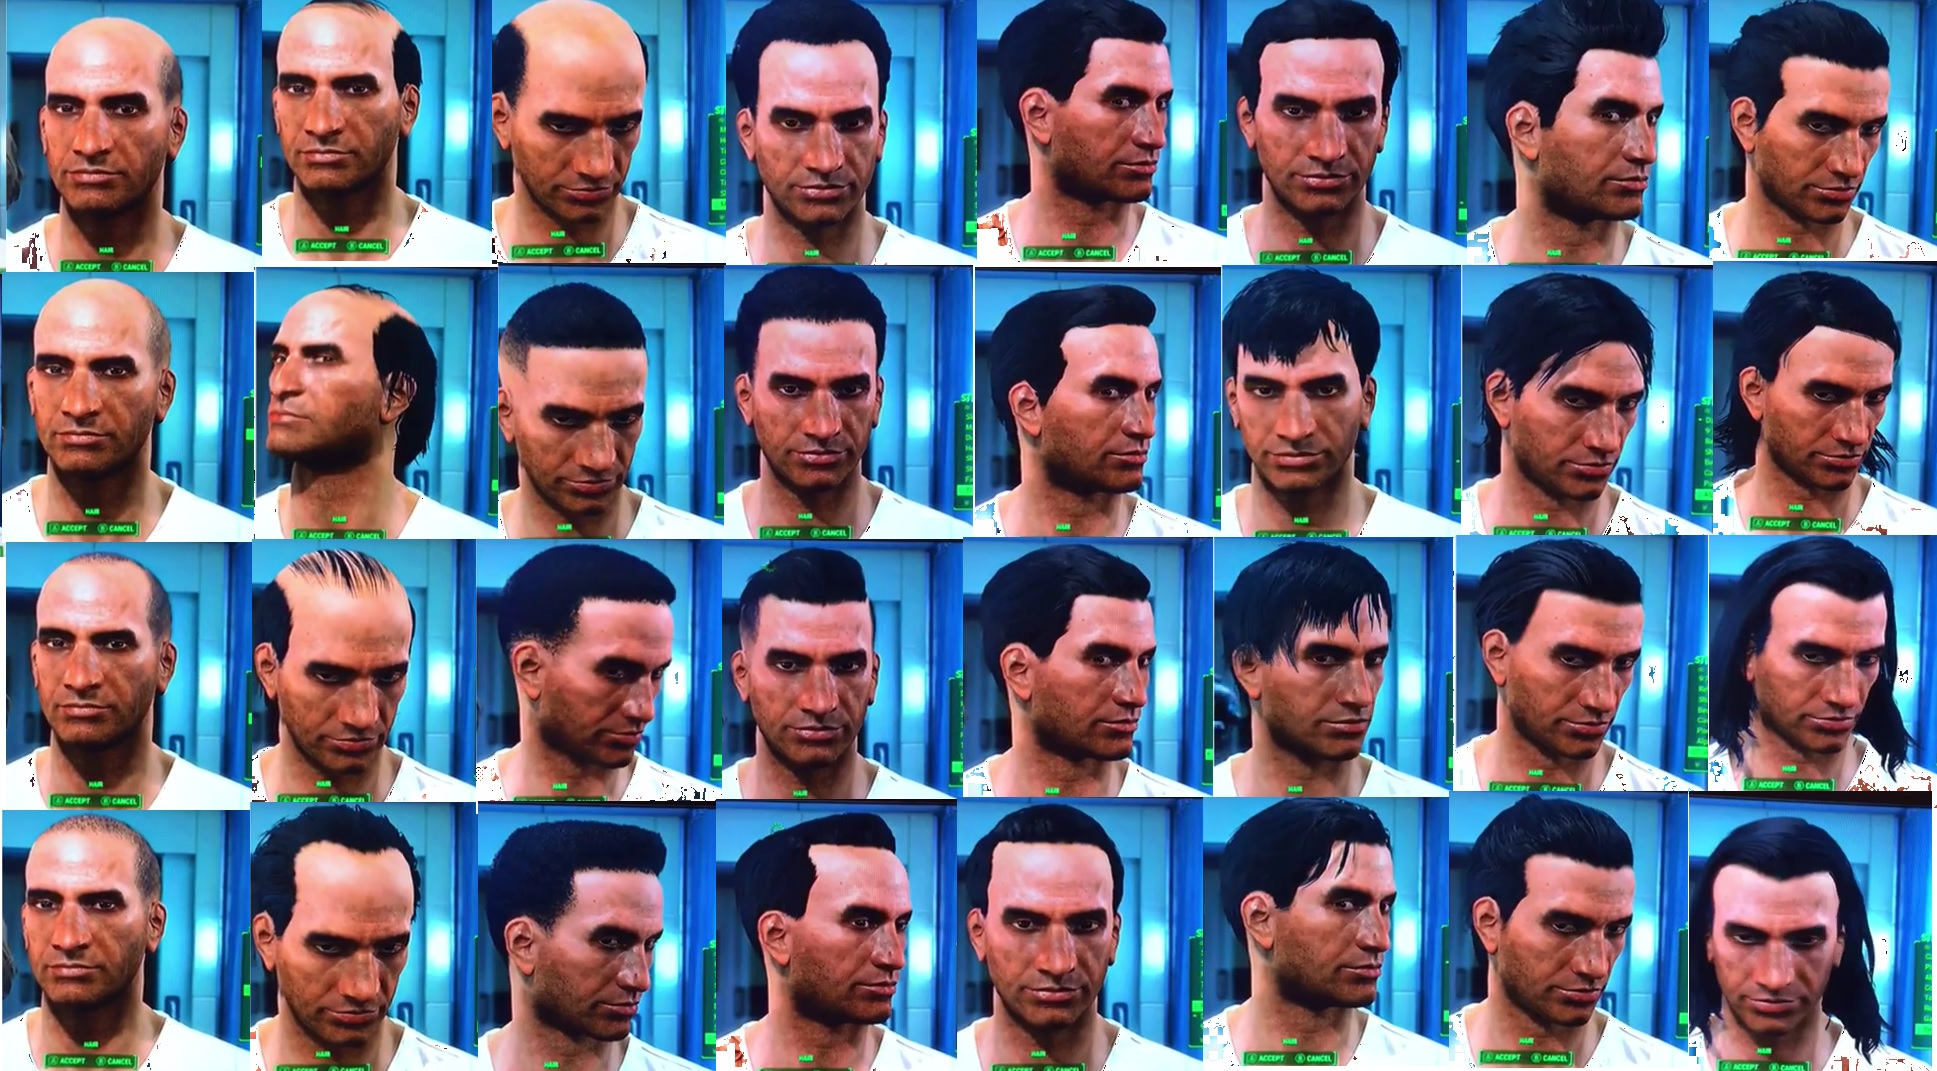 Fallout 4 List Of All Hair And Beard Customization